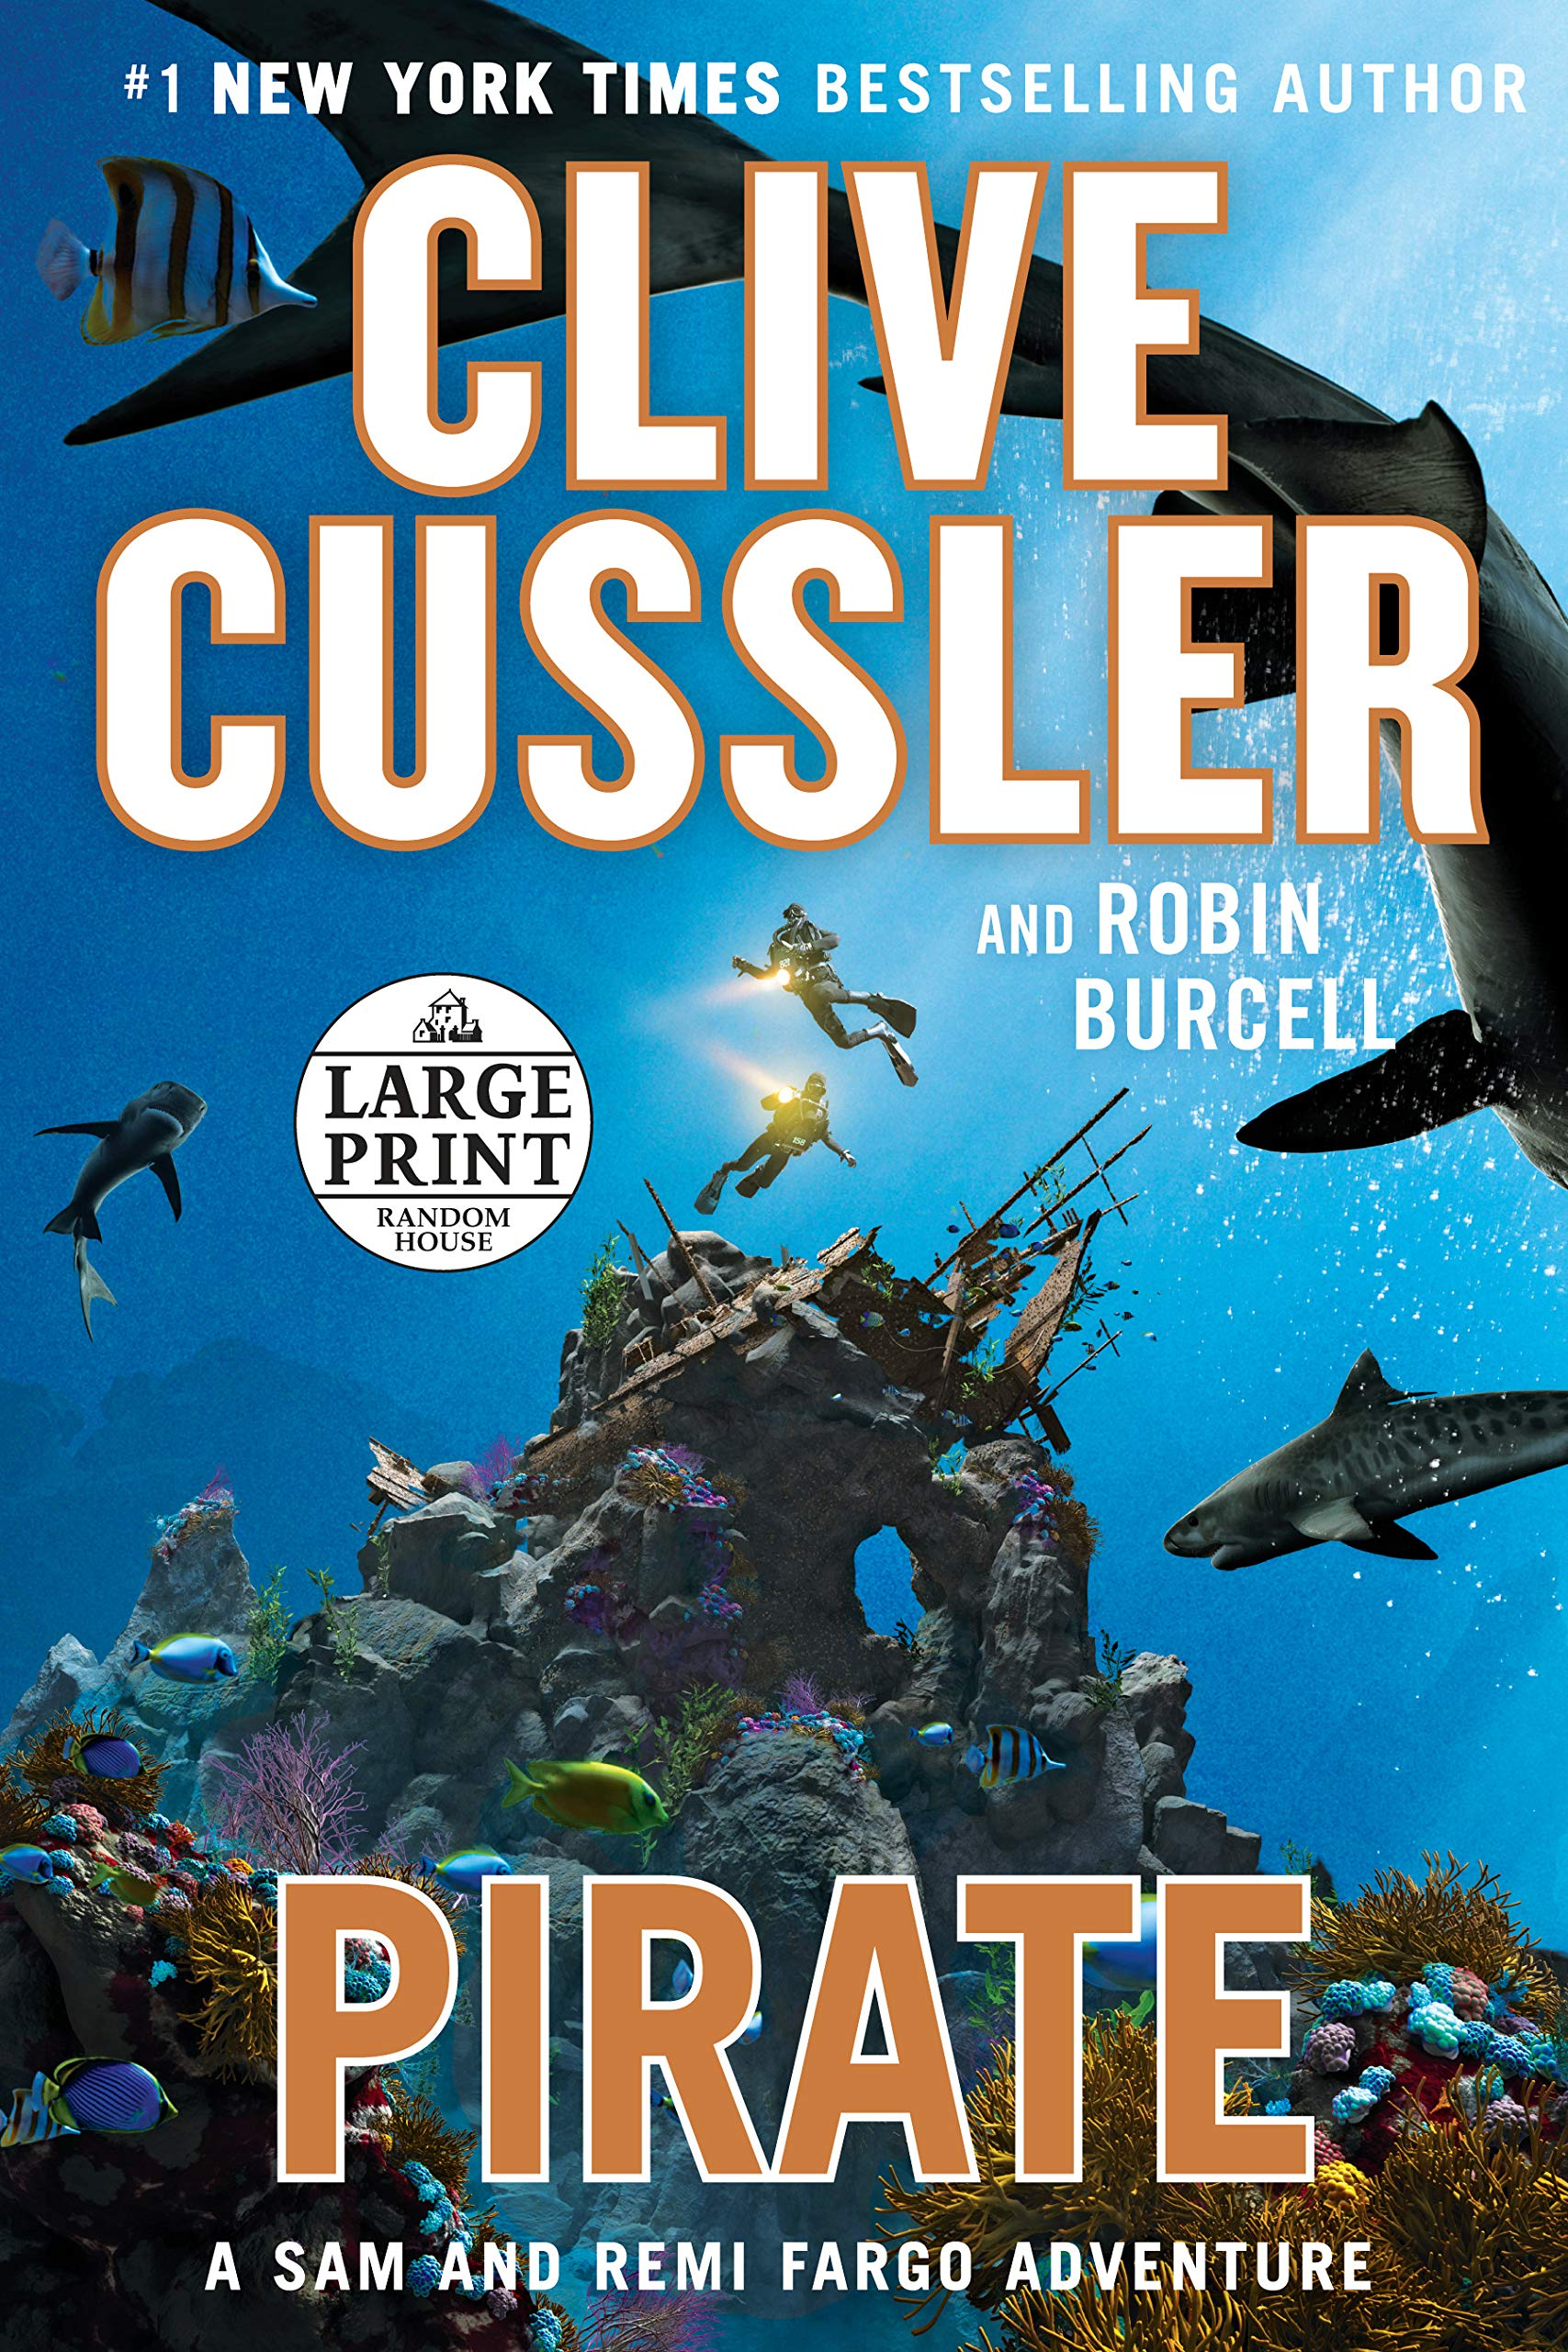 Pirate (Fargo Adventures): Amazon.co.uk: Clive Cussler, Robin Burcell:  9781524708900: Books